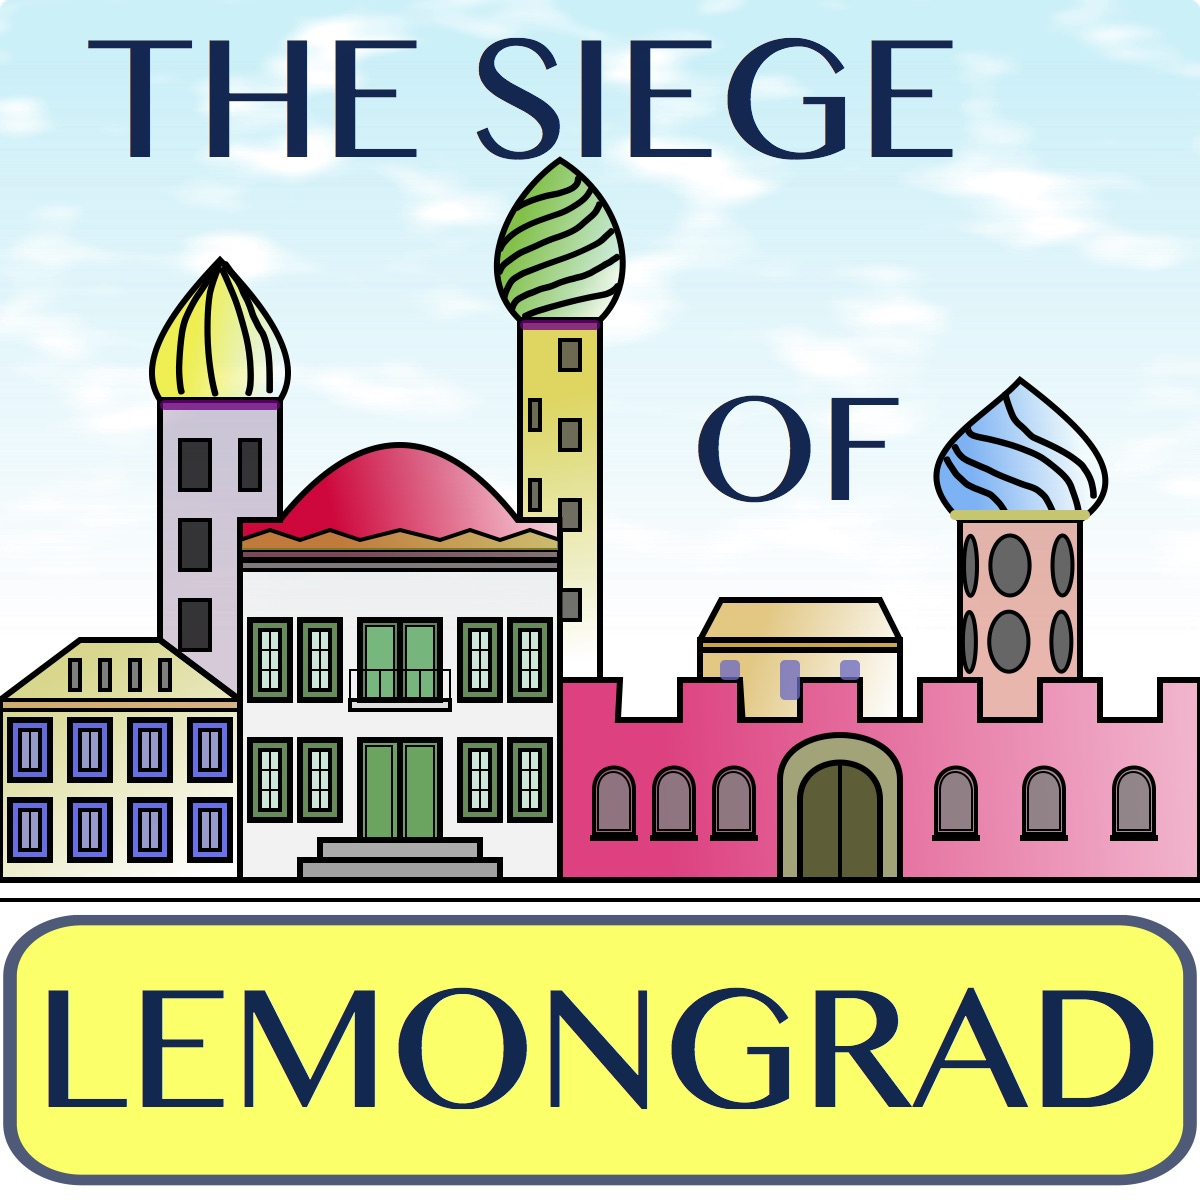 YouTube video of the composition The Siege of Lemongrad by Frans Absil